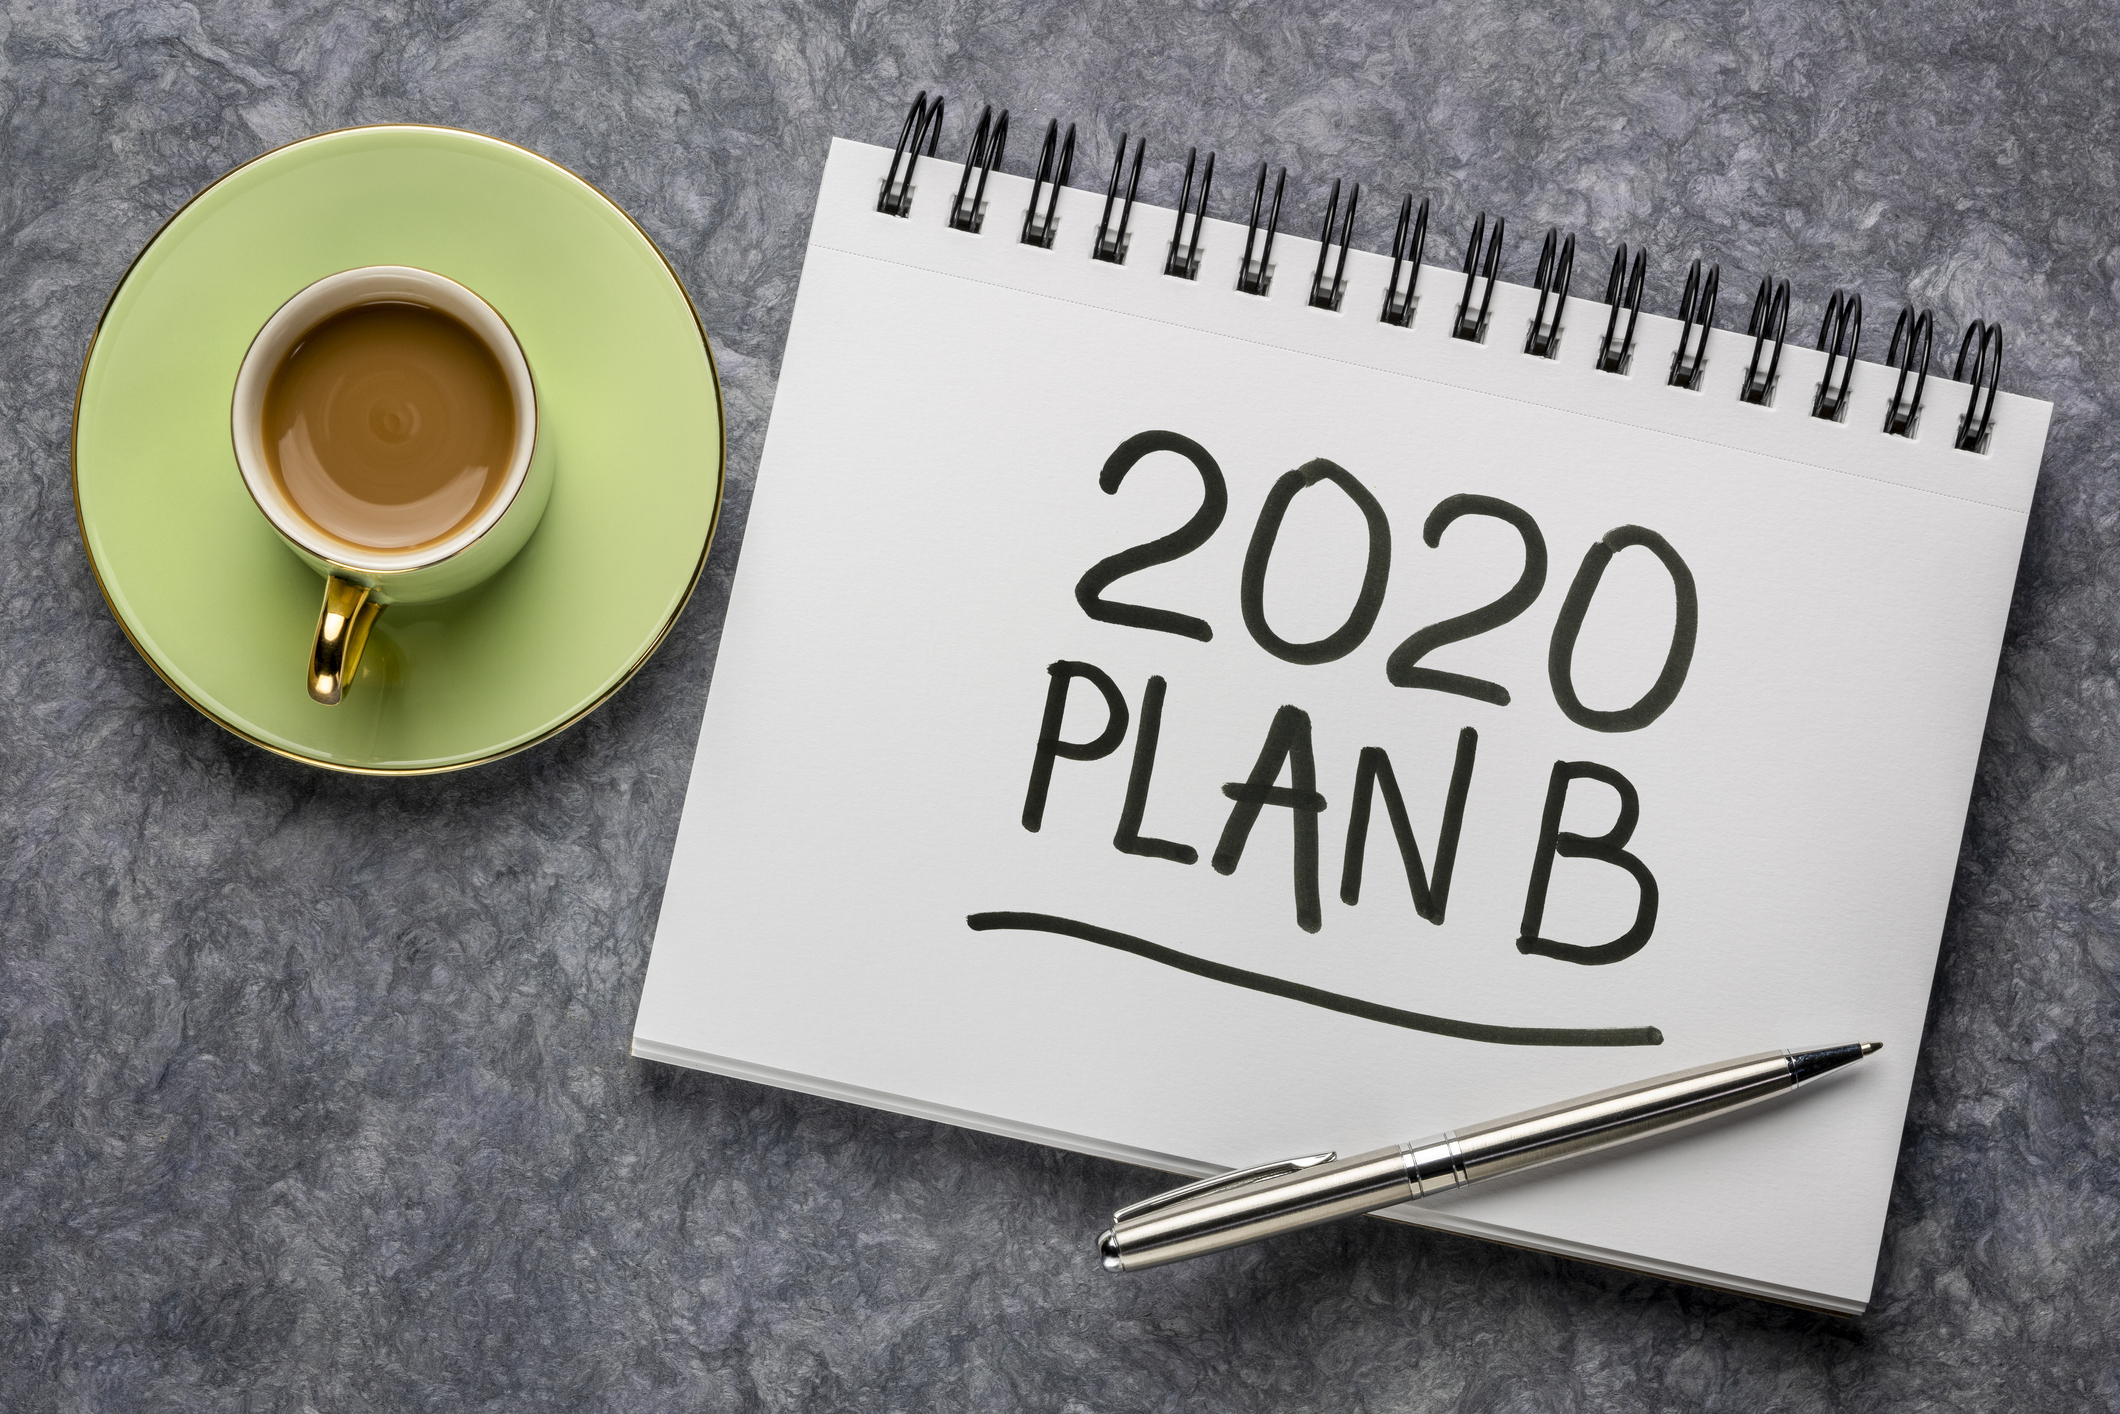 2020 plan B - change of business and personal plans for 2020 coronavirus pandemic and market recession, handwriting in a sketchbook